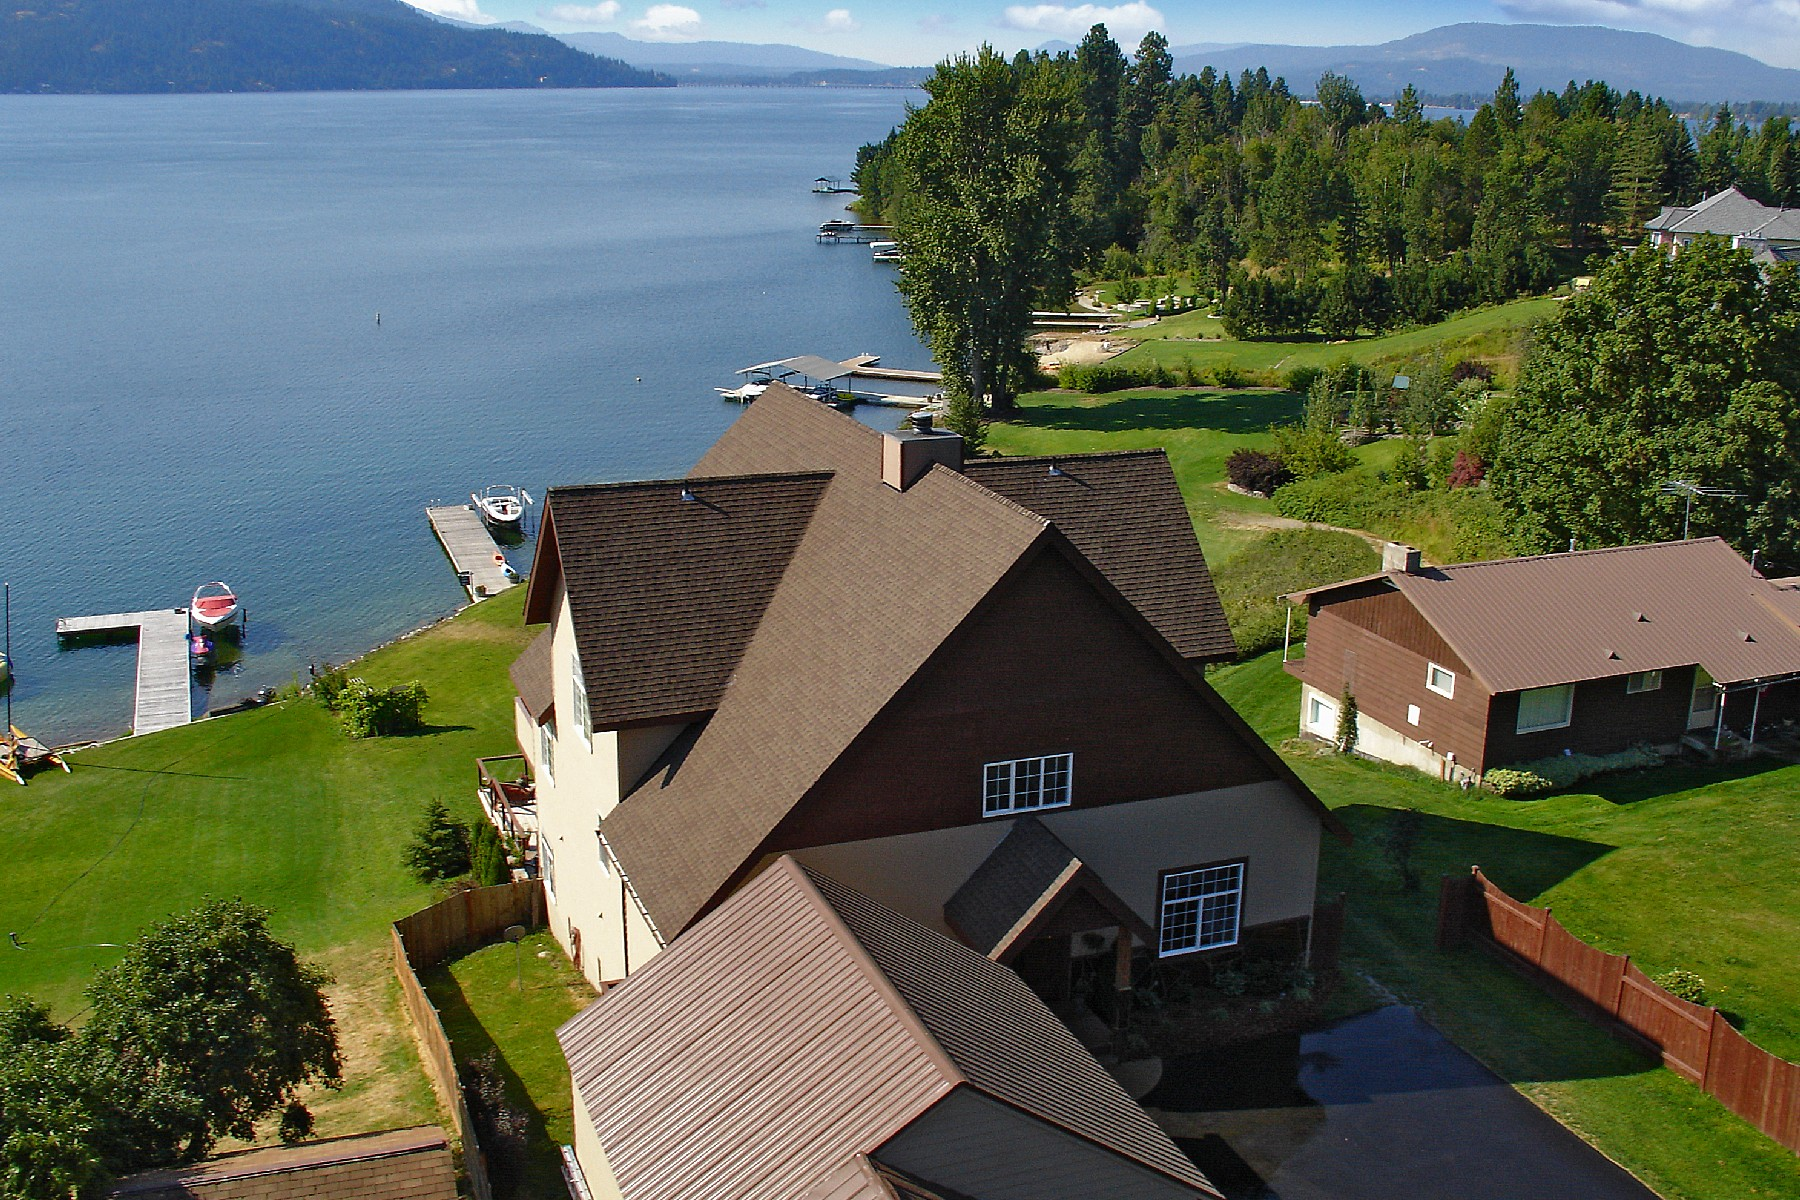 Single Family Home for Sale at Incredible In-Town Lake Front Property 152 Kootenai Bay Rd Sandpoint, Idaho 83864 United States